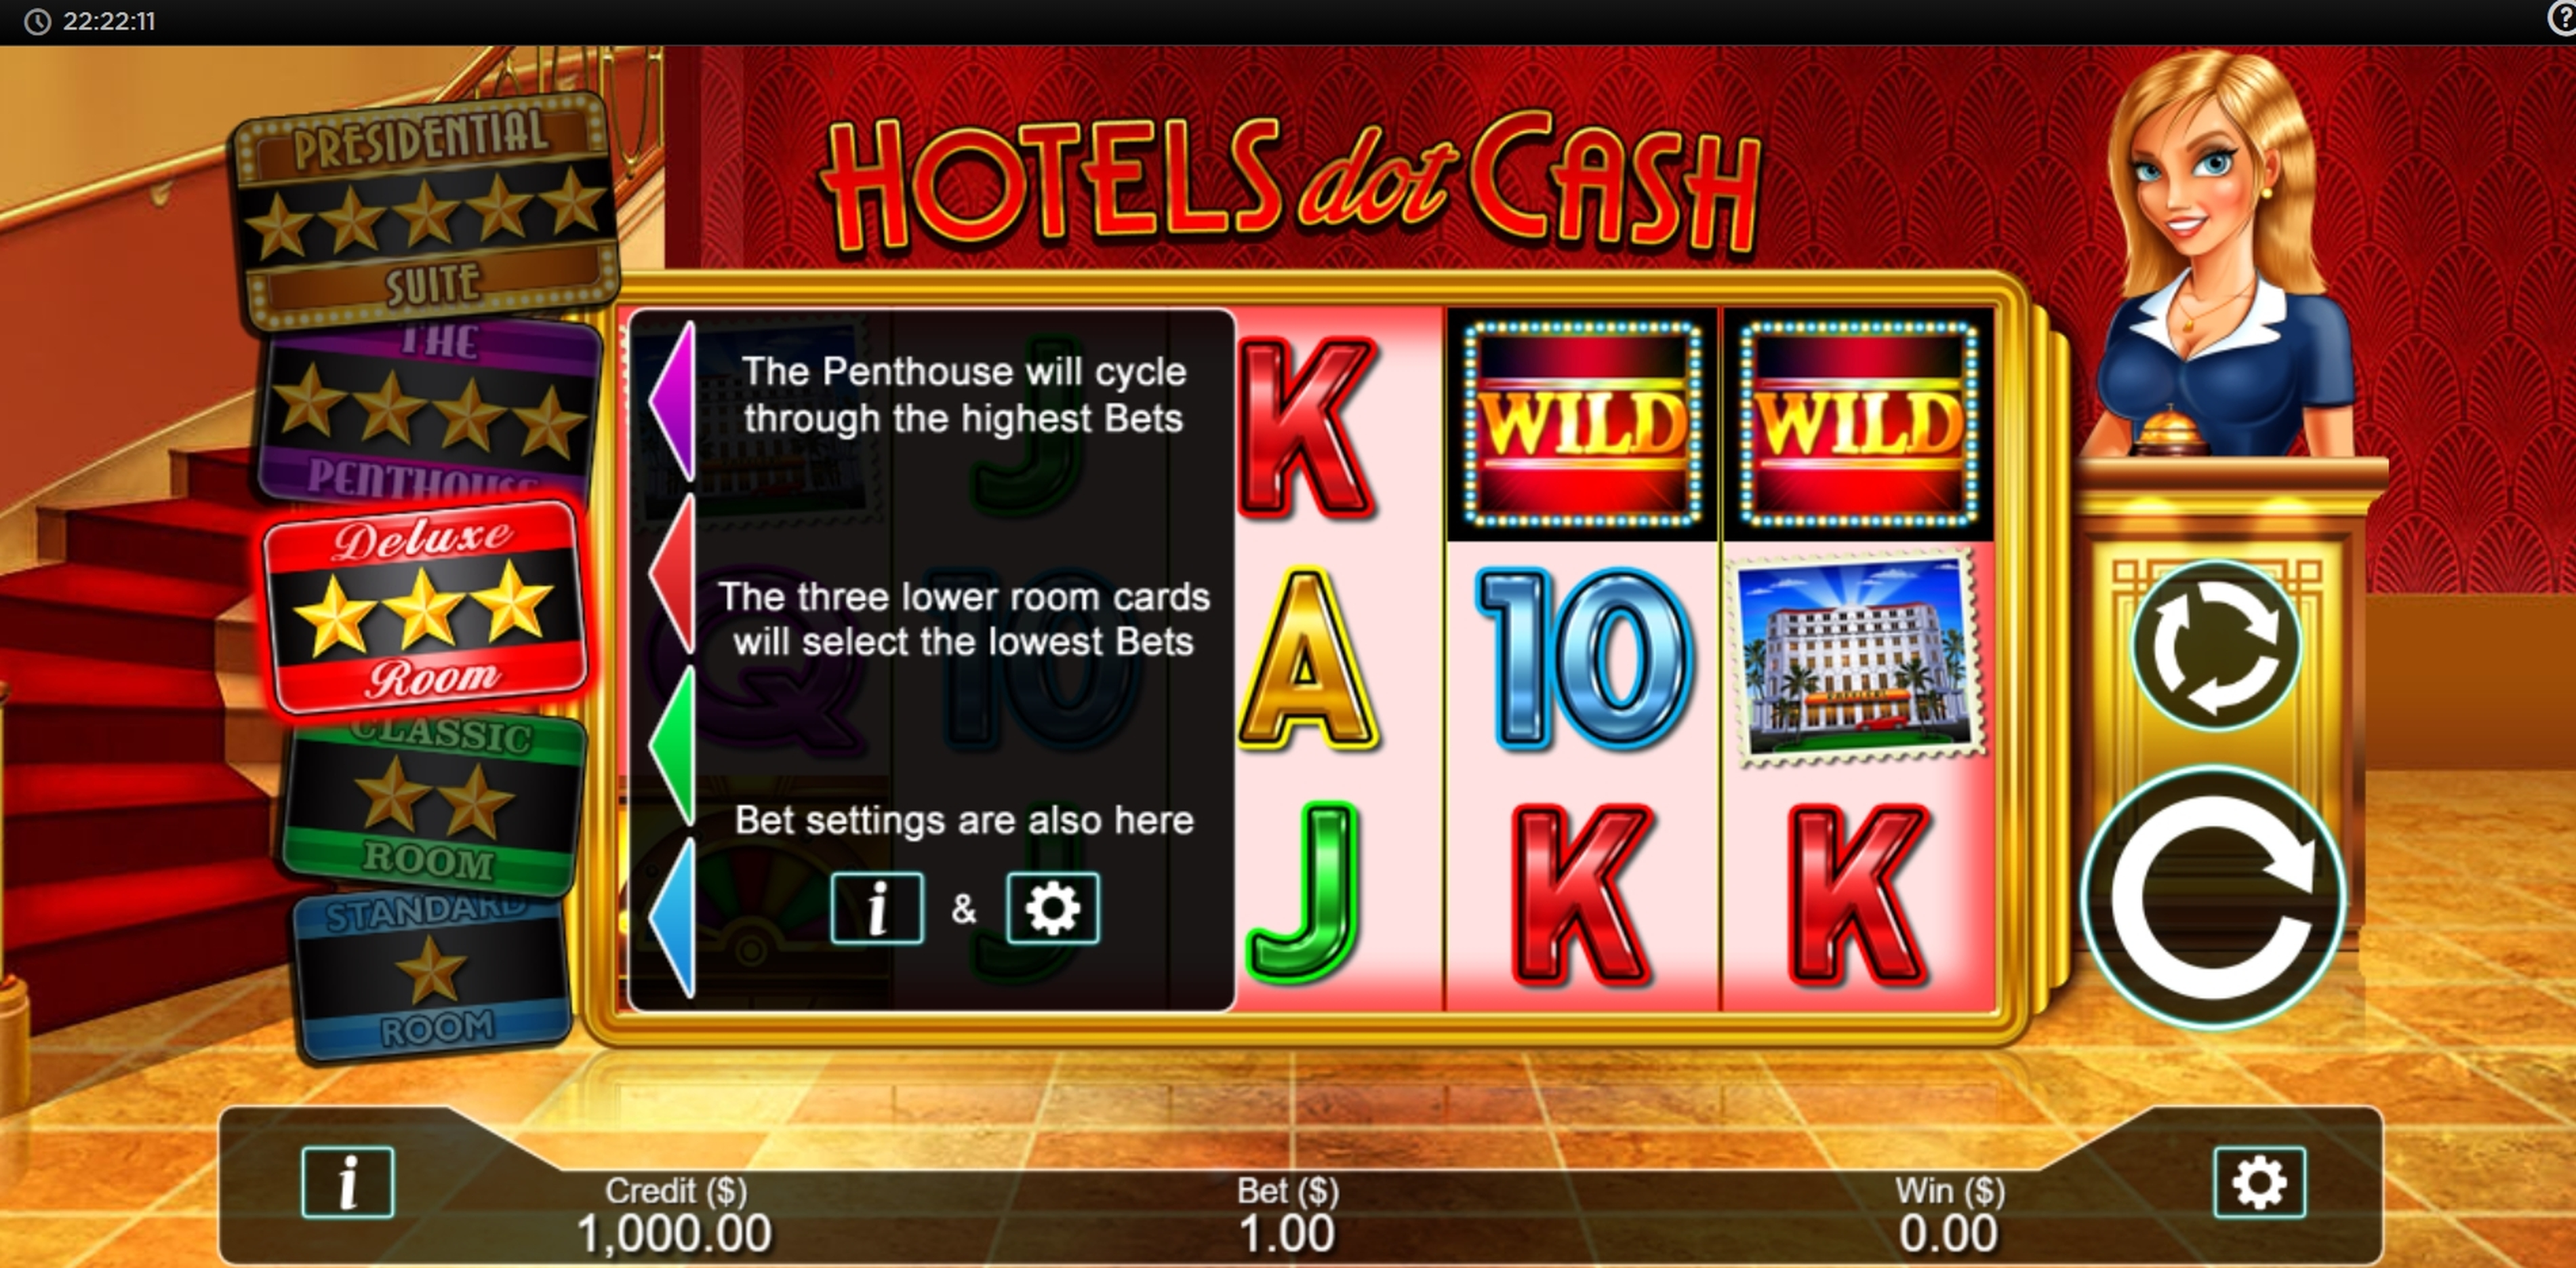 Reels in Hotels Dot Cash Slot Game by Live 5 Gaming